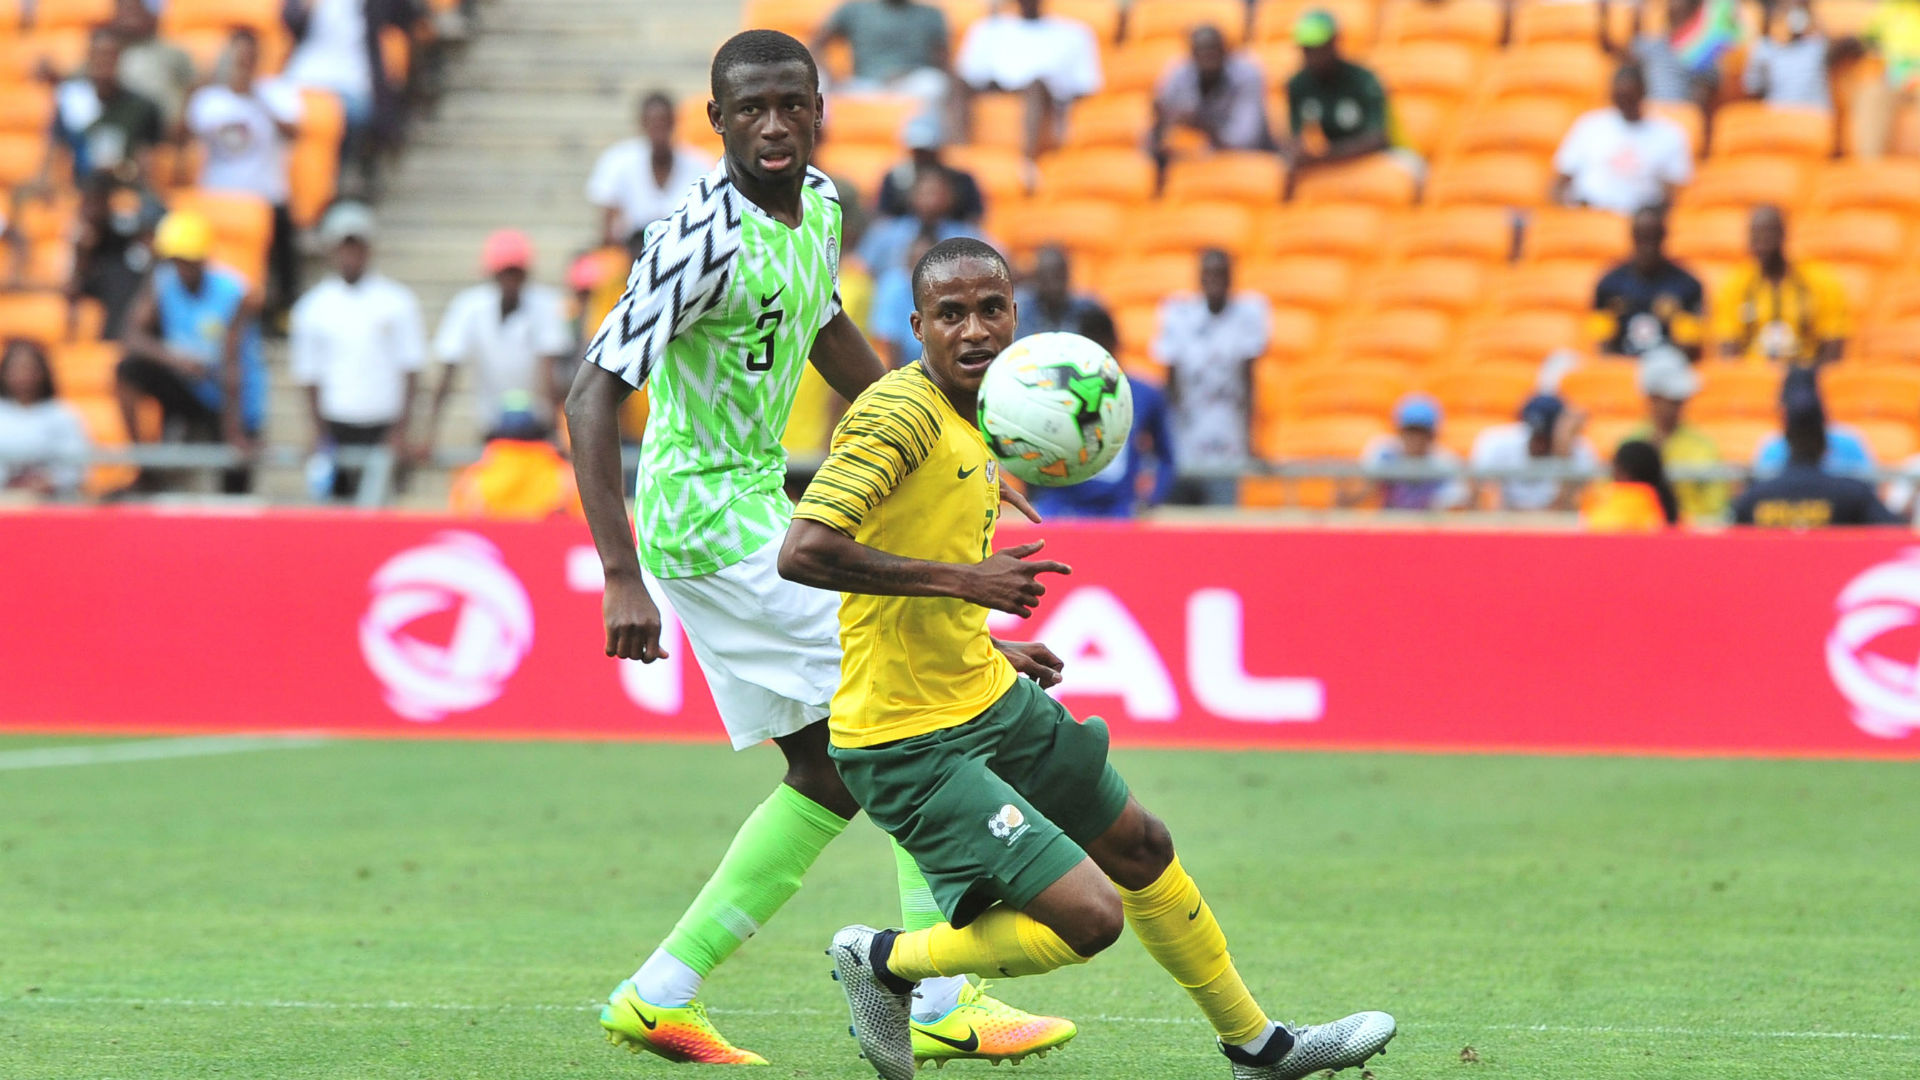 Super Eagles stars train at FNB stadium ahead of South Africa clash